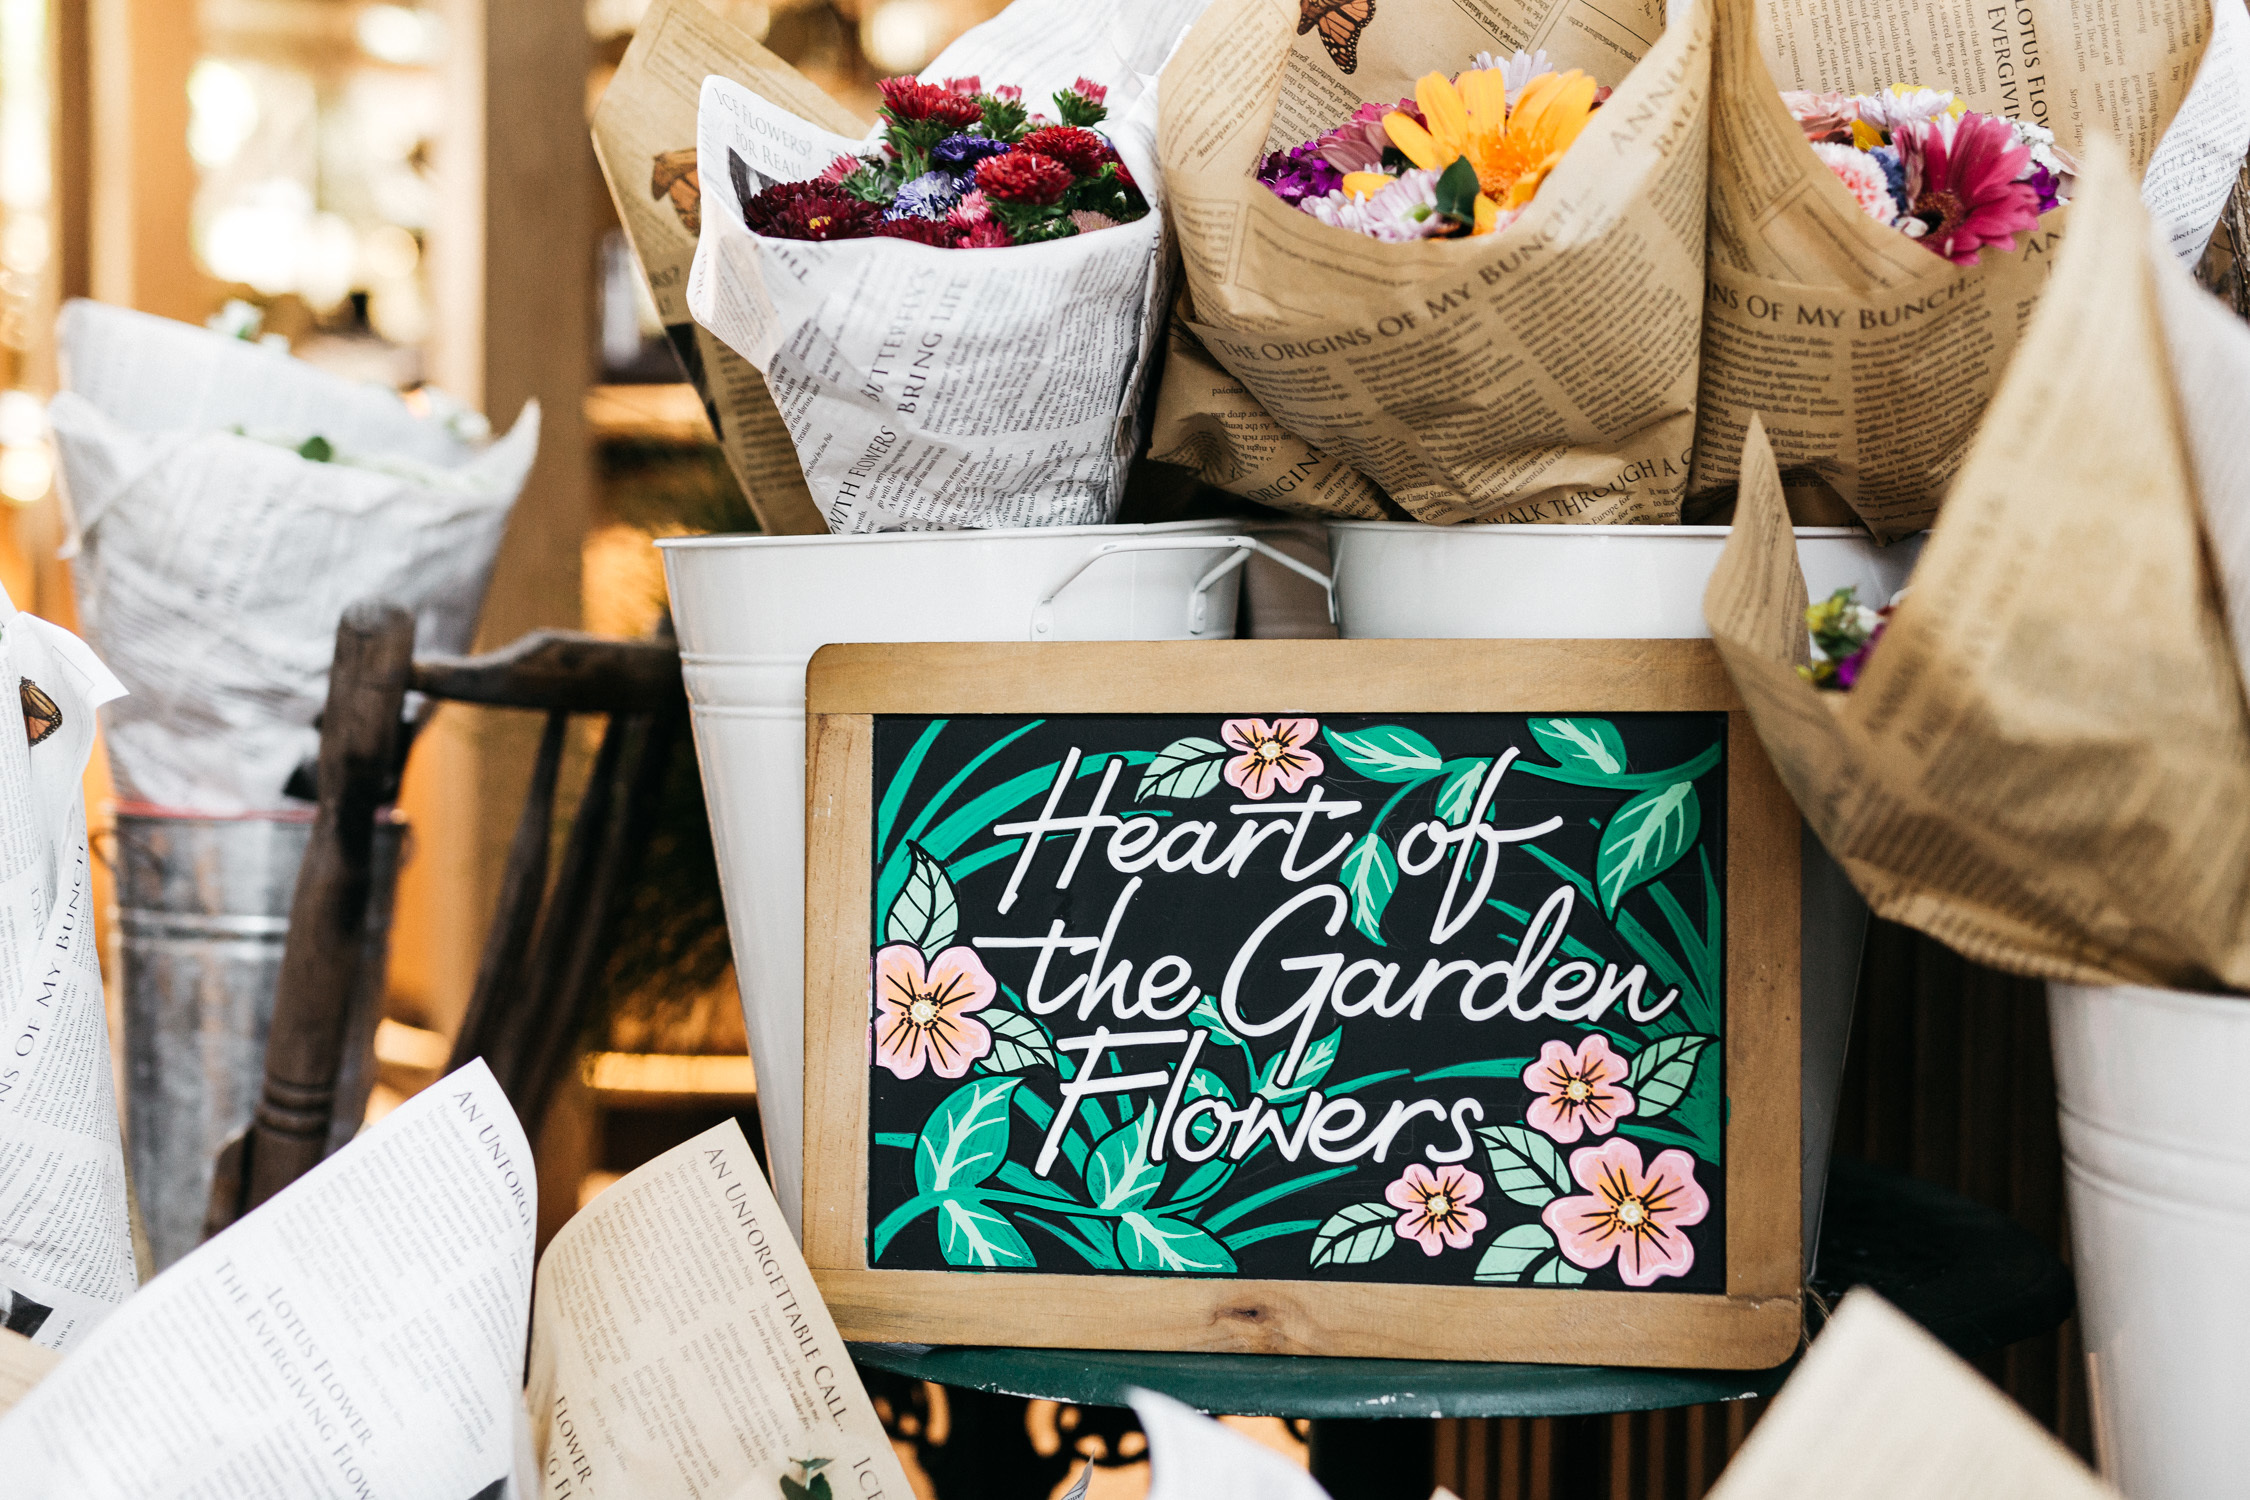 Heart of the Garden pop-up florist